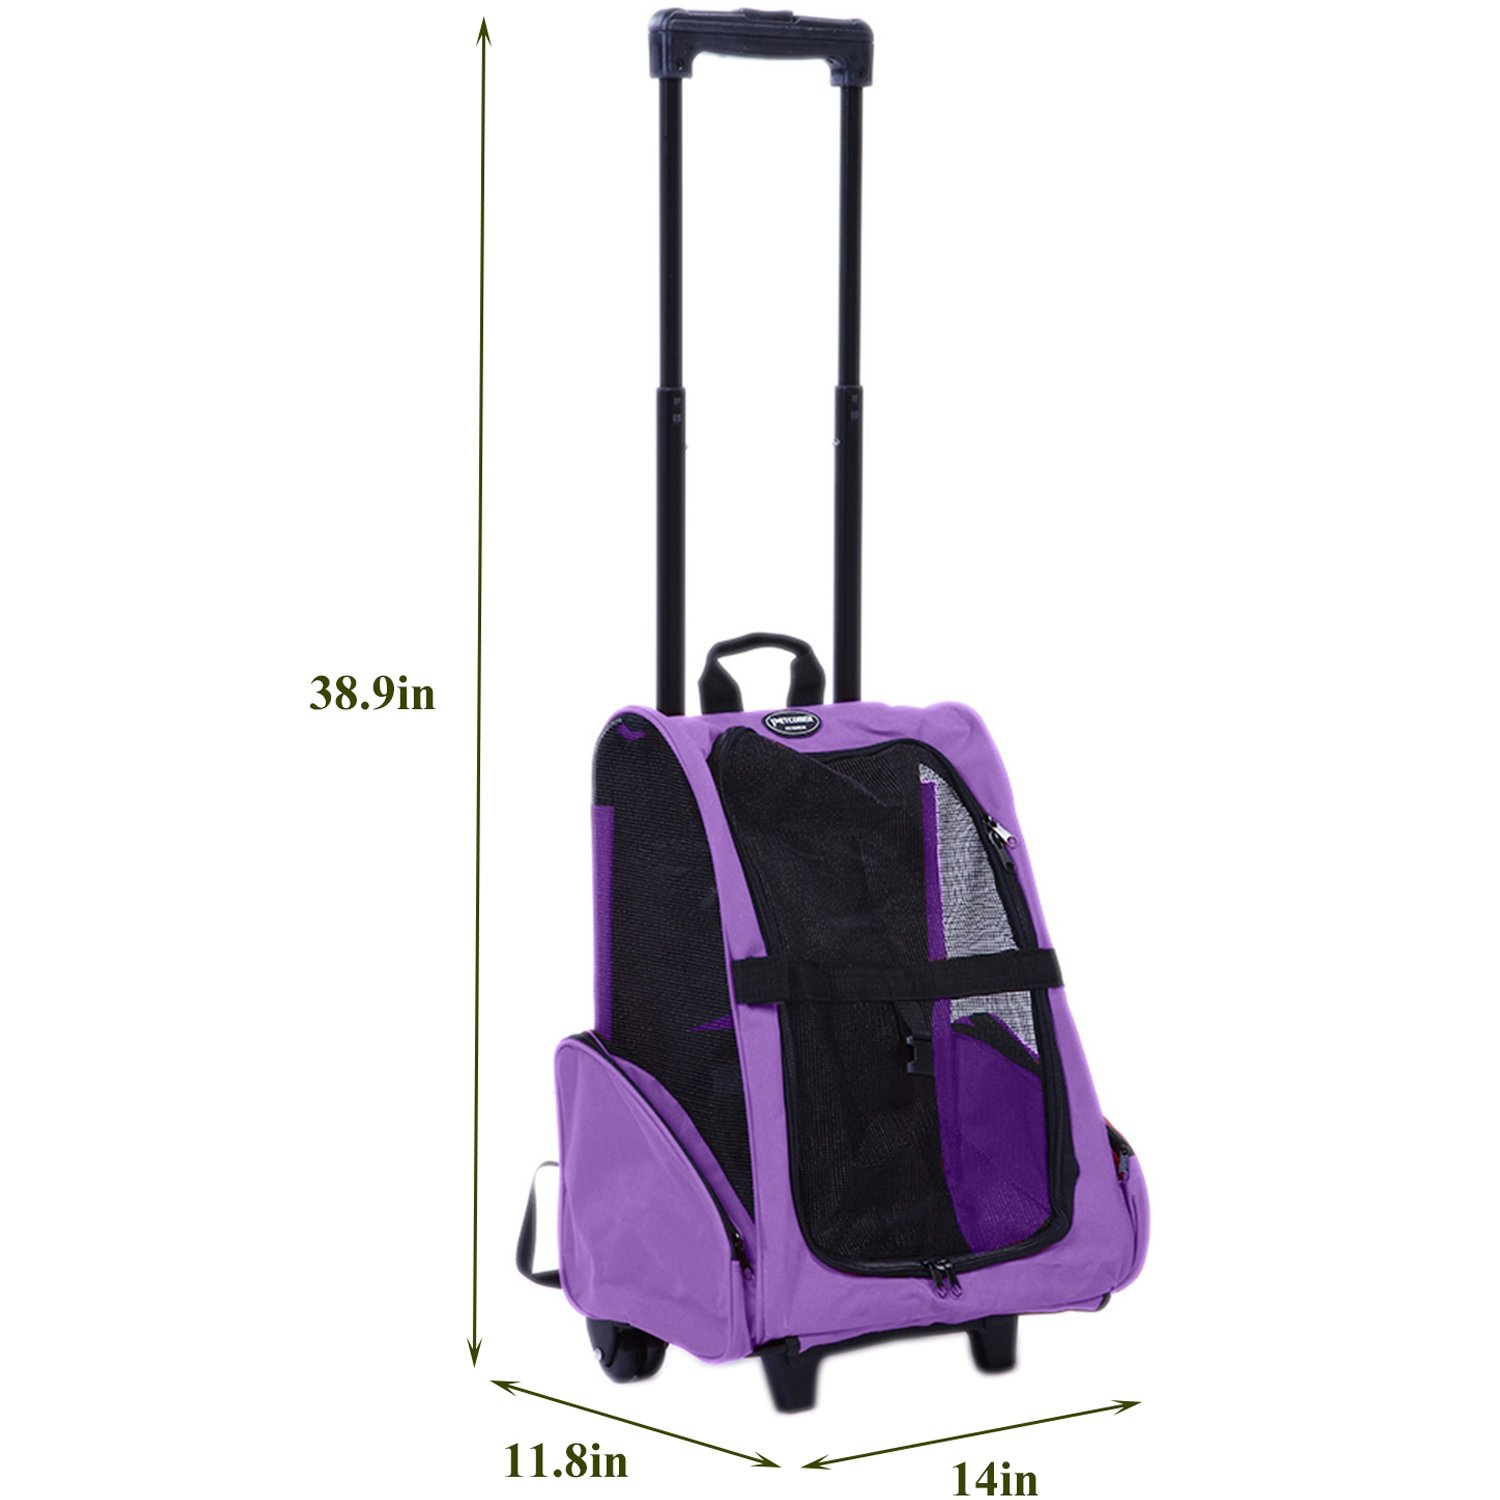 Pettom Roll Around 4-in-1 Pet Carrier Travel Backpack for Dogs & Cats&Small Animals Travel Tote Airline Approved (Small-Hold pet up to 10 lbs, Purple) by Pettom (Image #2)